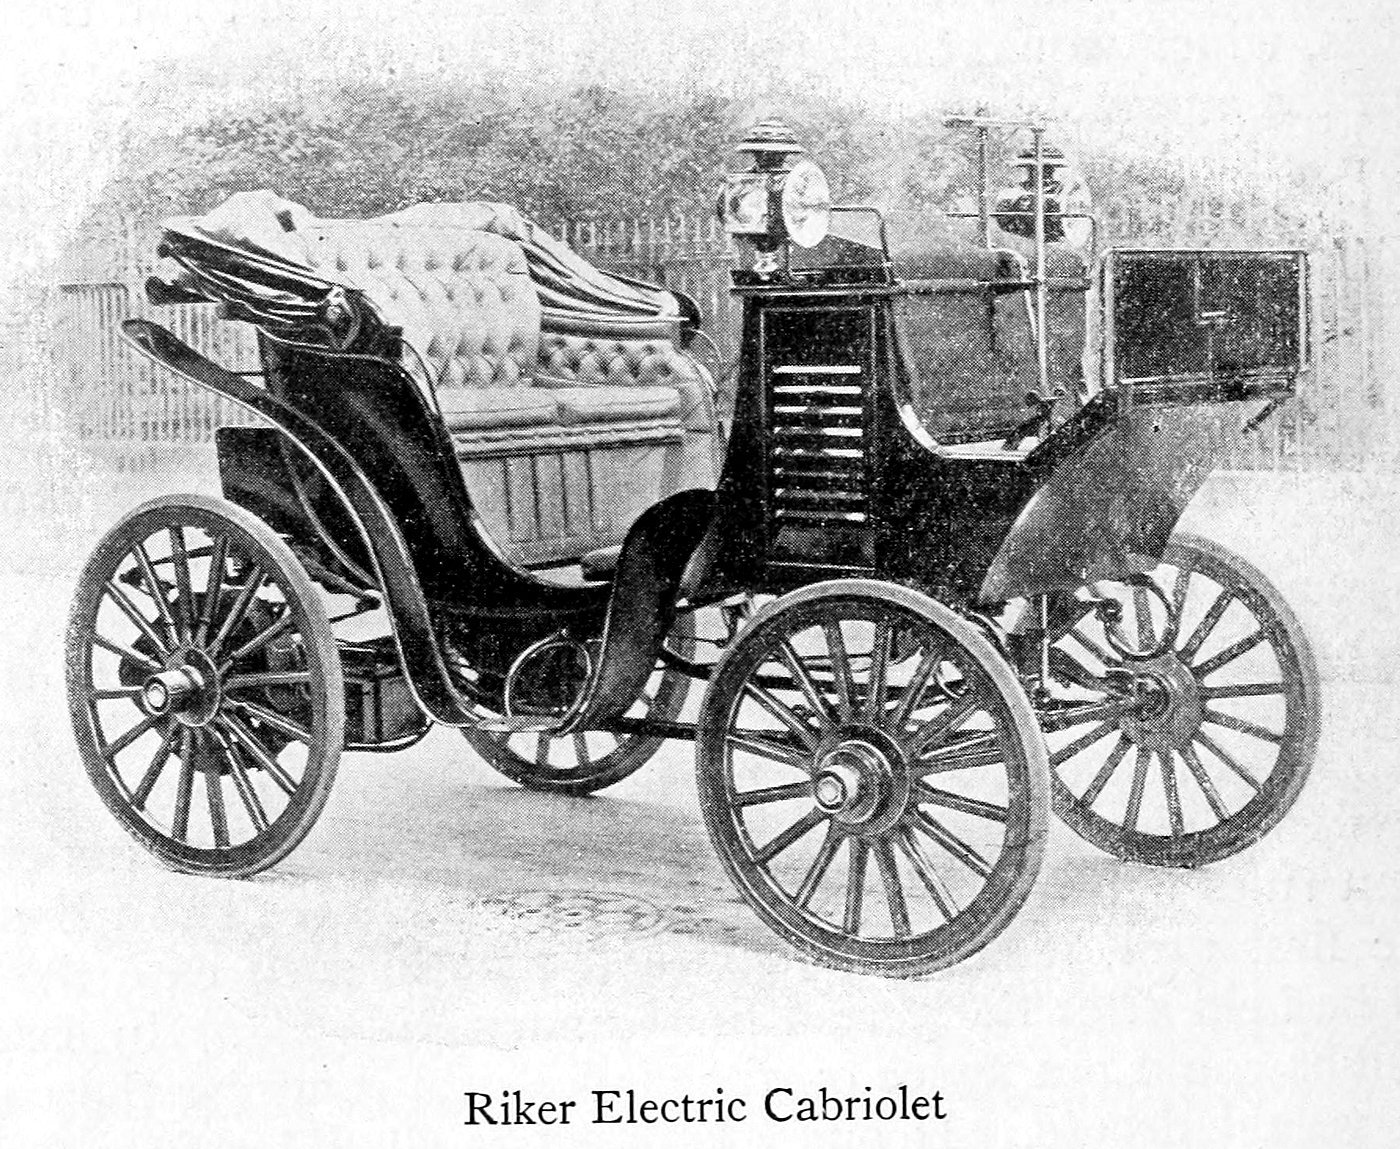 Riker electric Cabriolet (1899)